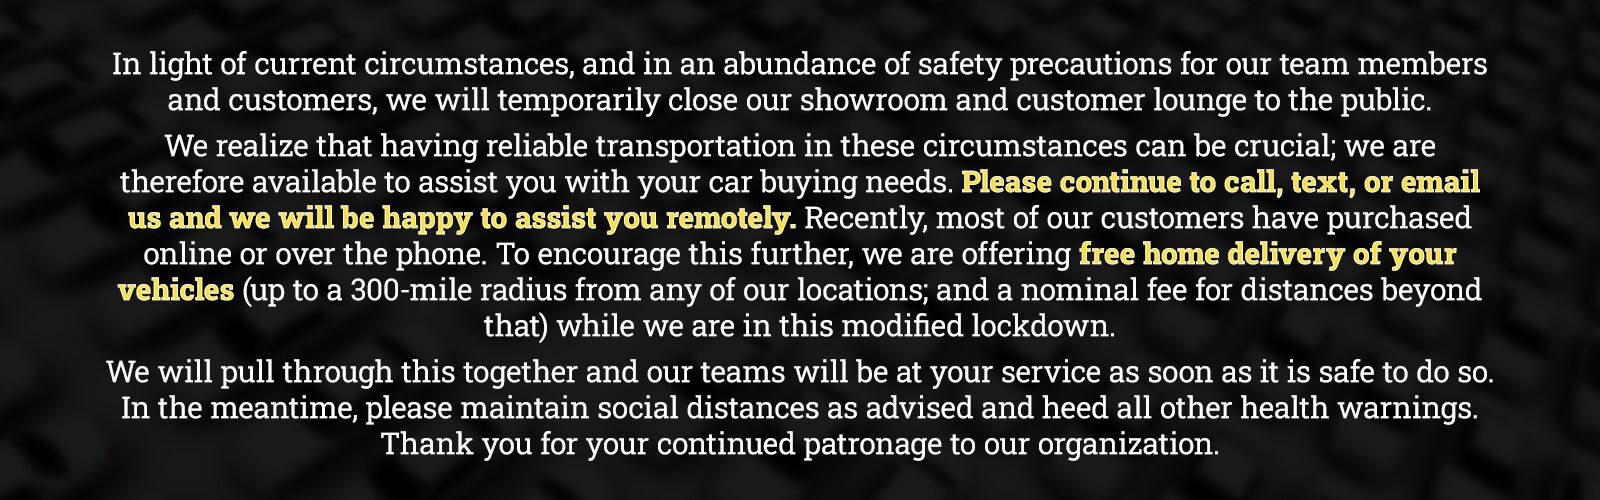 Showroom Closed Temporarily